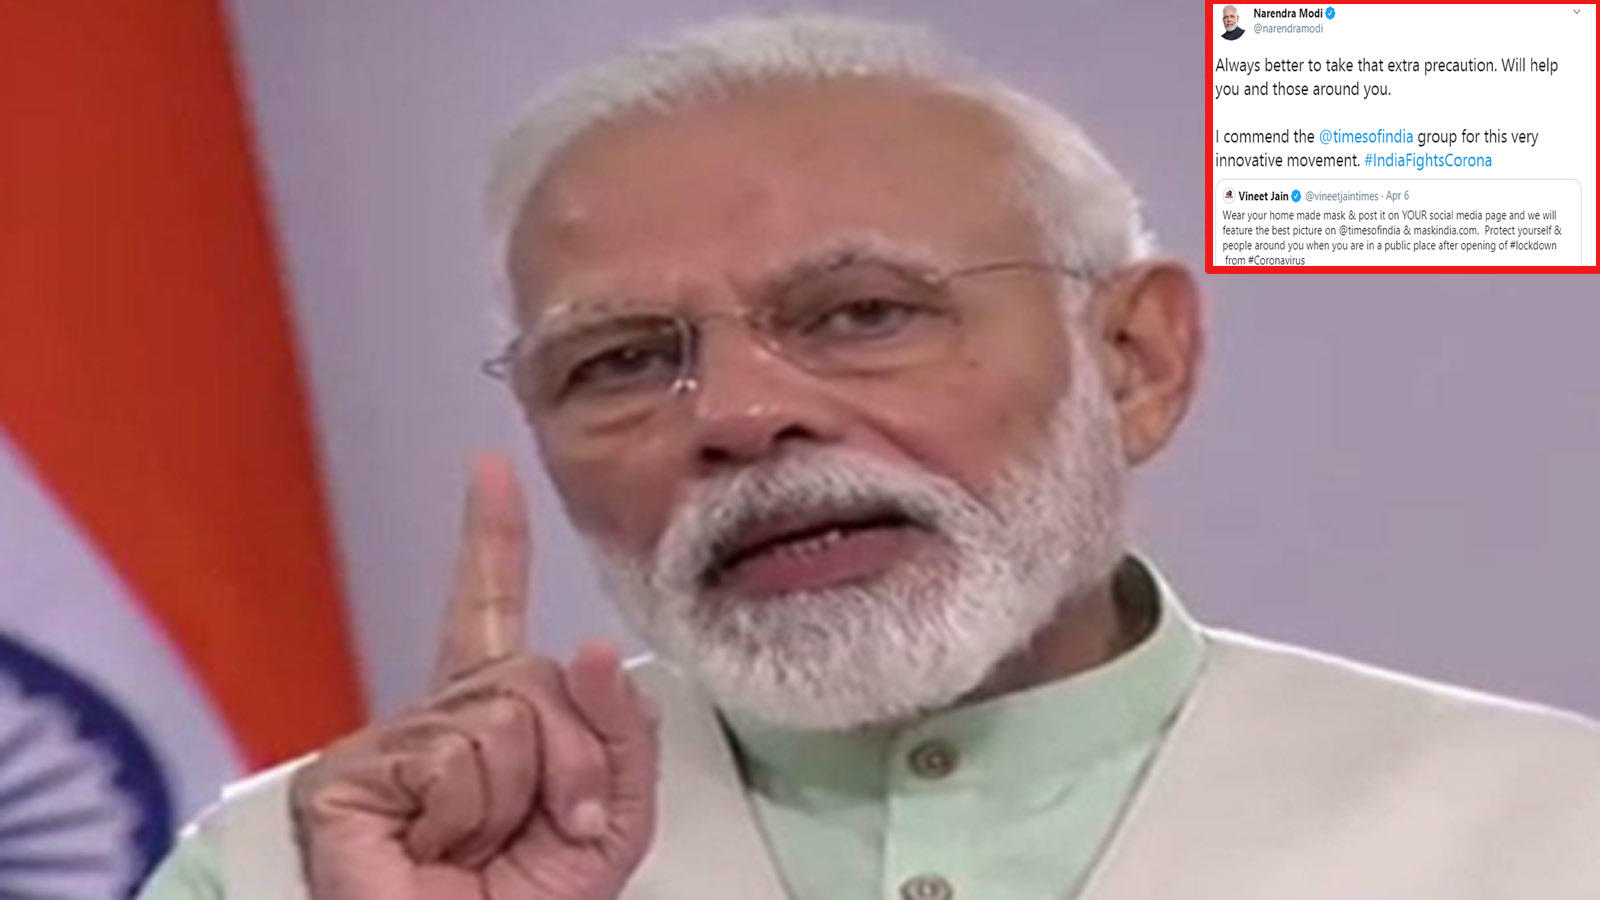 pm-modi-backs-times-group-campaign-against-covid-19